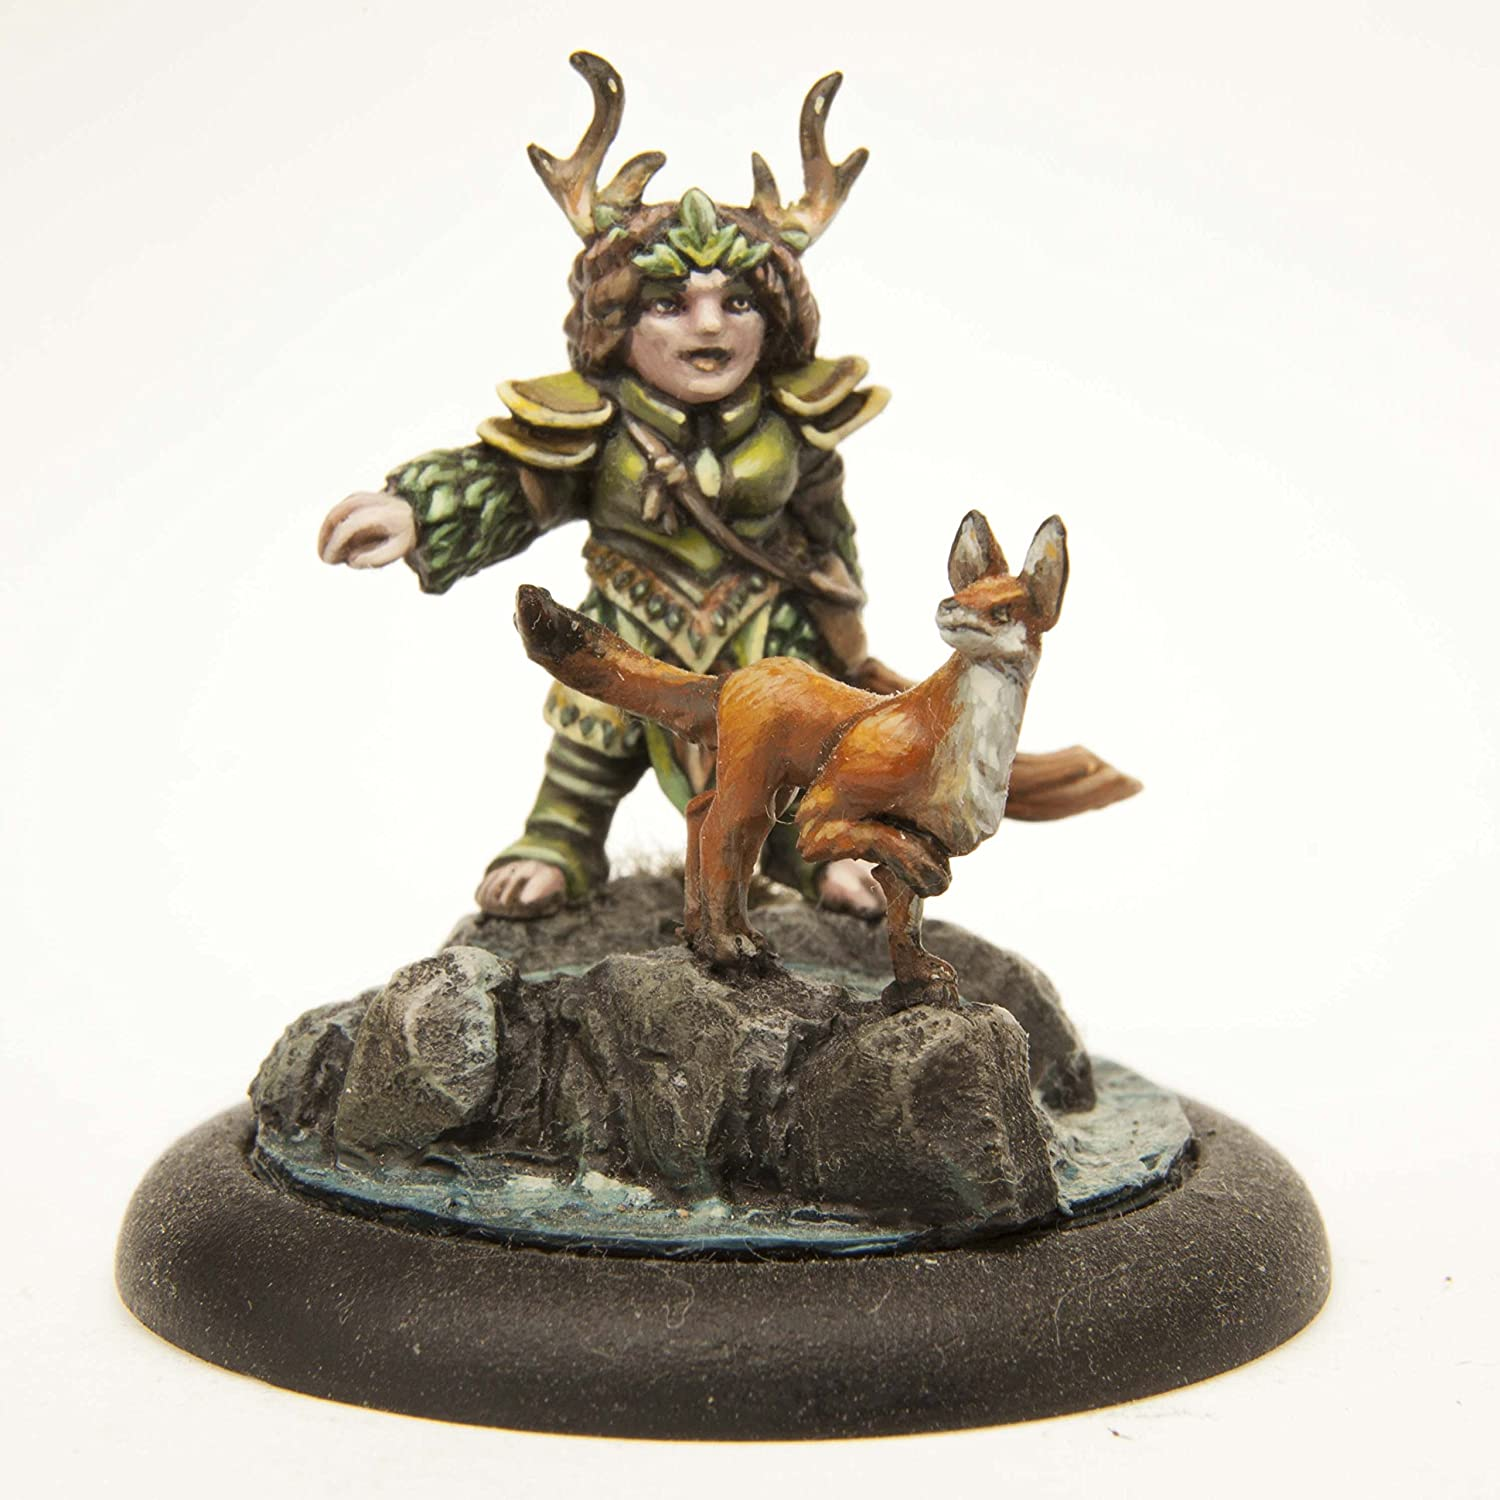 Stonehaven Dwarf Druid Miniature Figure (for 28mm Scale Table Top War  Games) - Made in USA